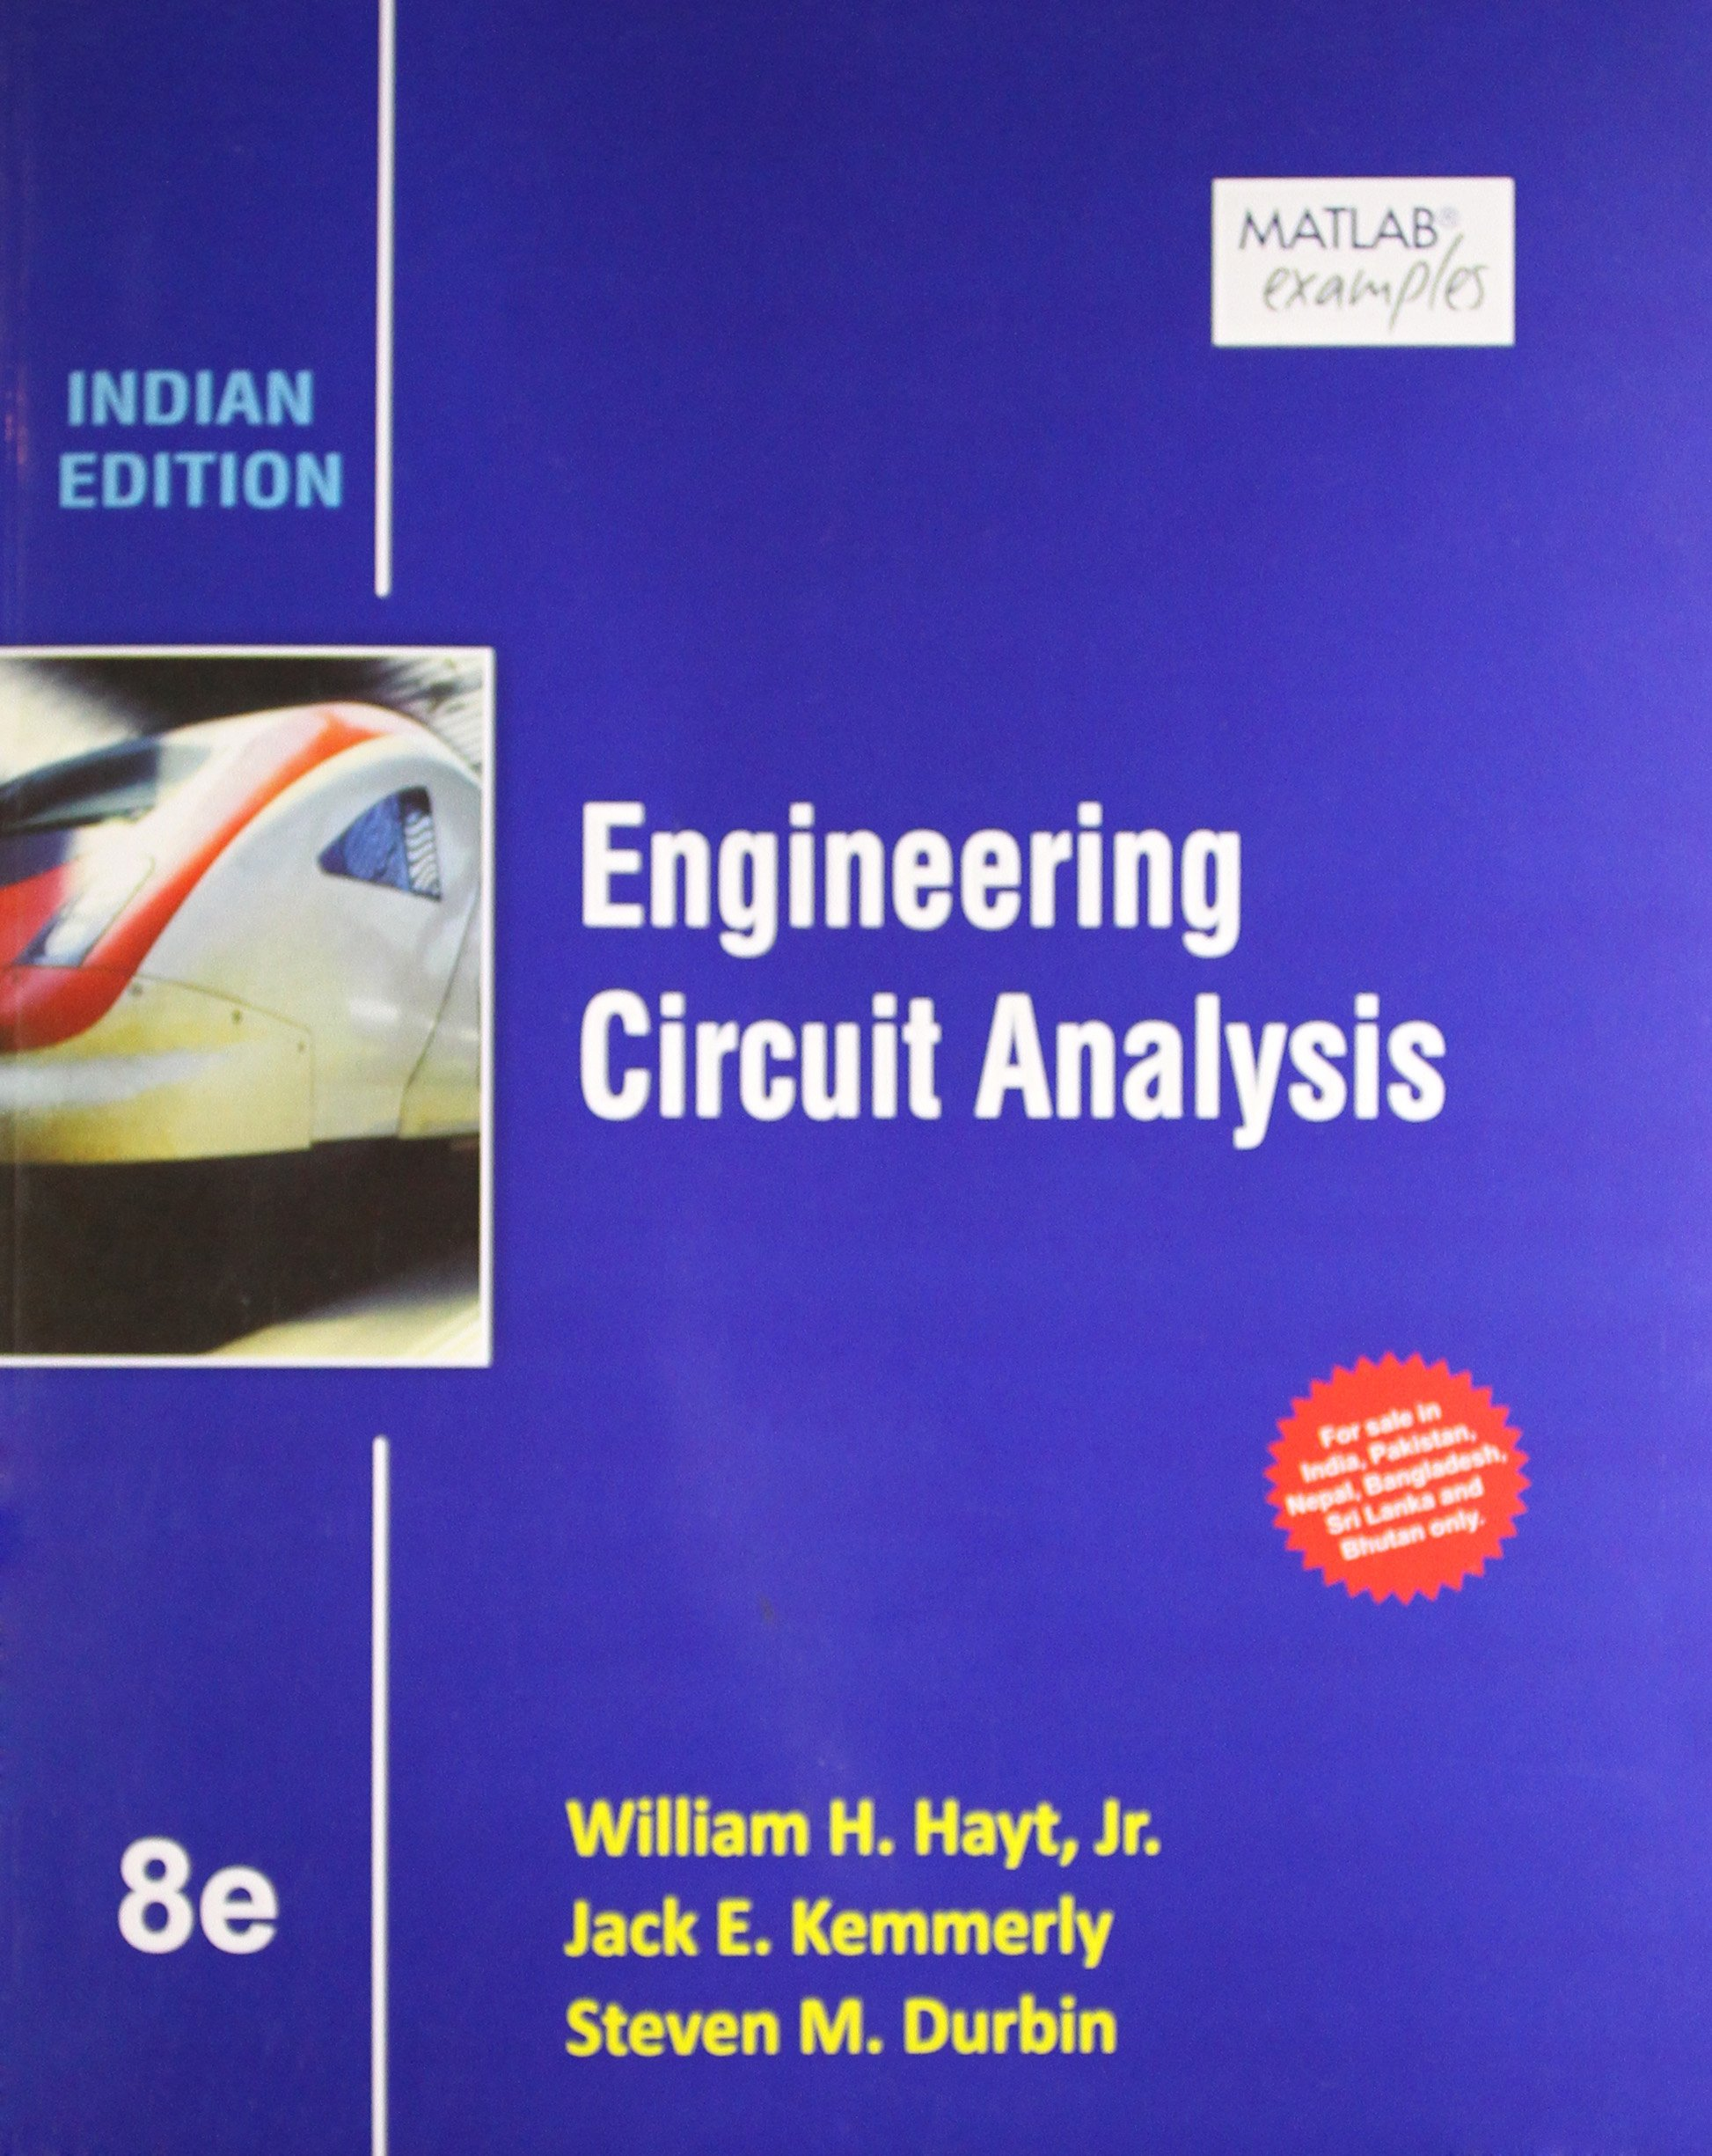 Buy Engineering Circuit Analysis Book Online At Low Prices In India Understand Basic Theory Designing Electronic Circuits Reviews Ratings